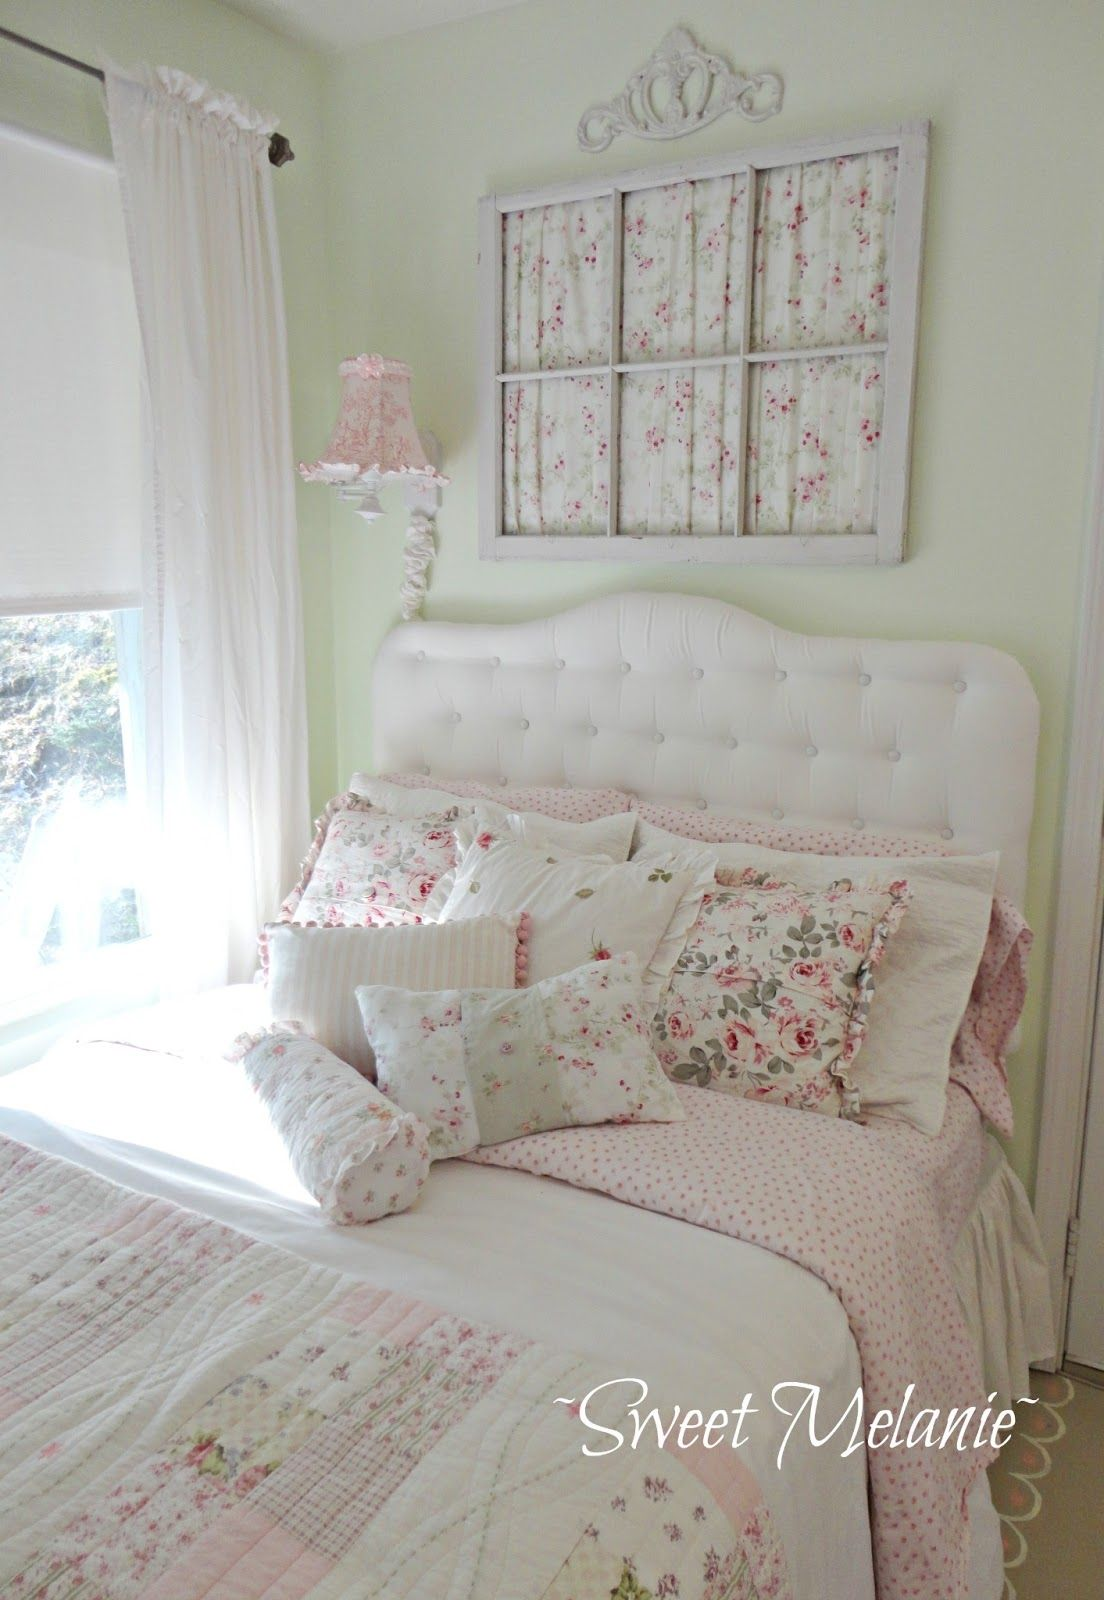 Sweet Melanie A New Bed for Guests Shabby chic decor